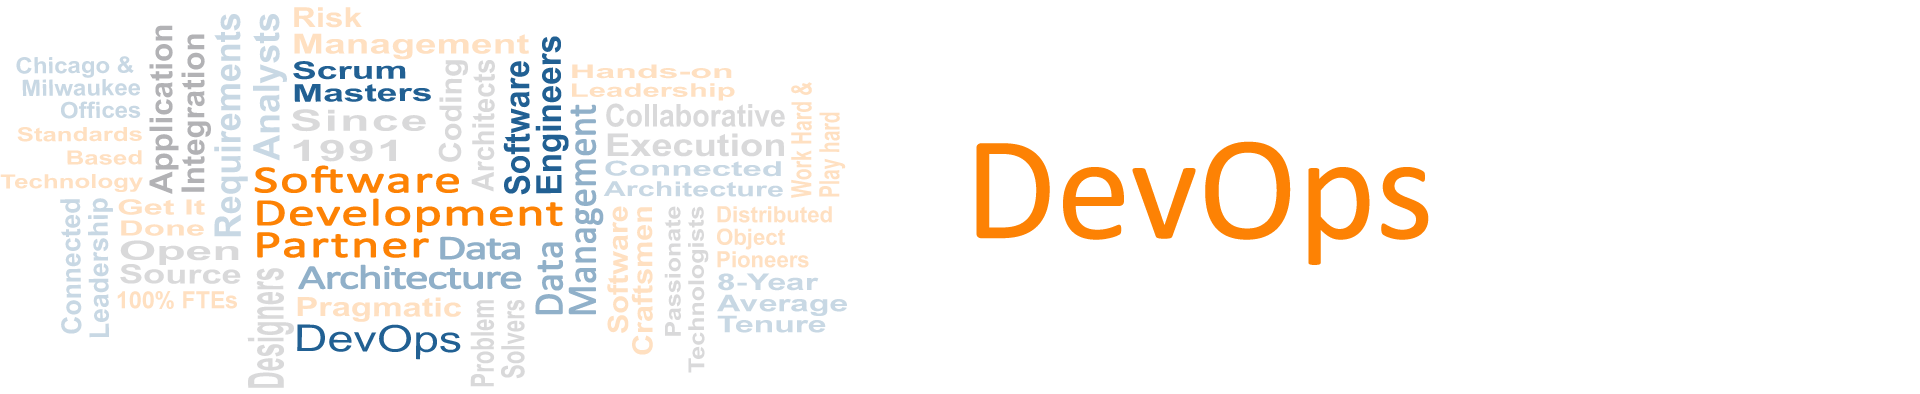 NVISIA-DevOps-Page-Header.png